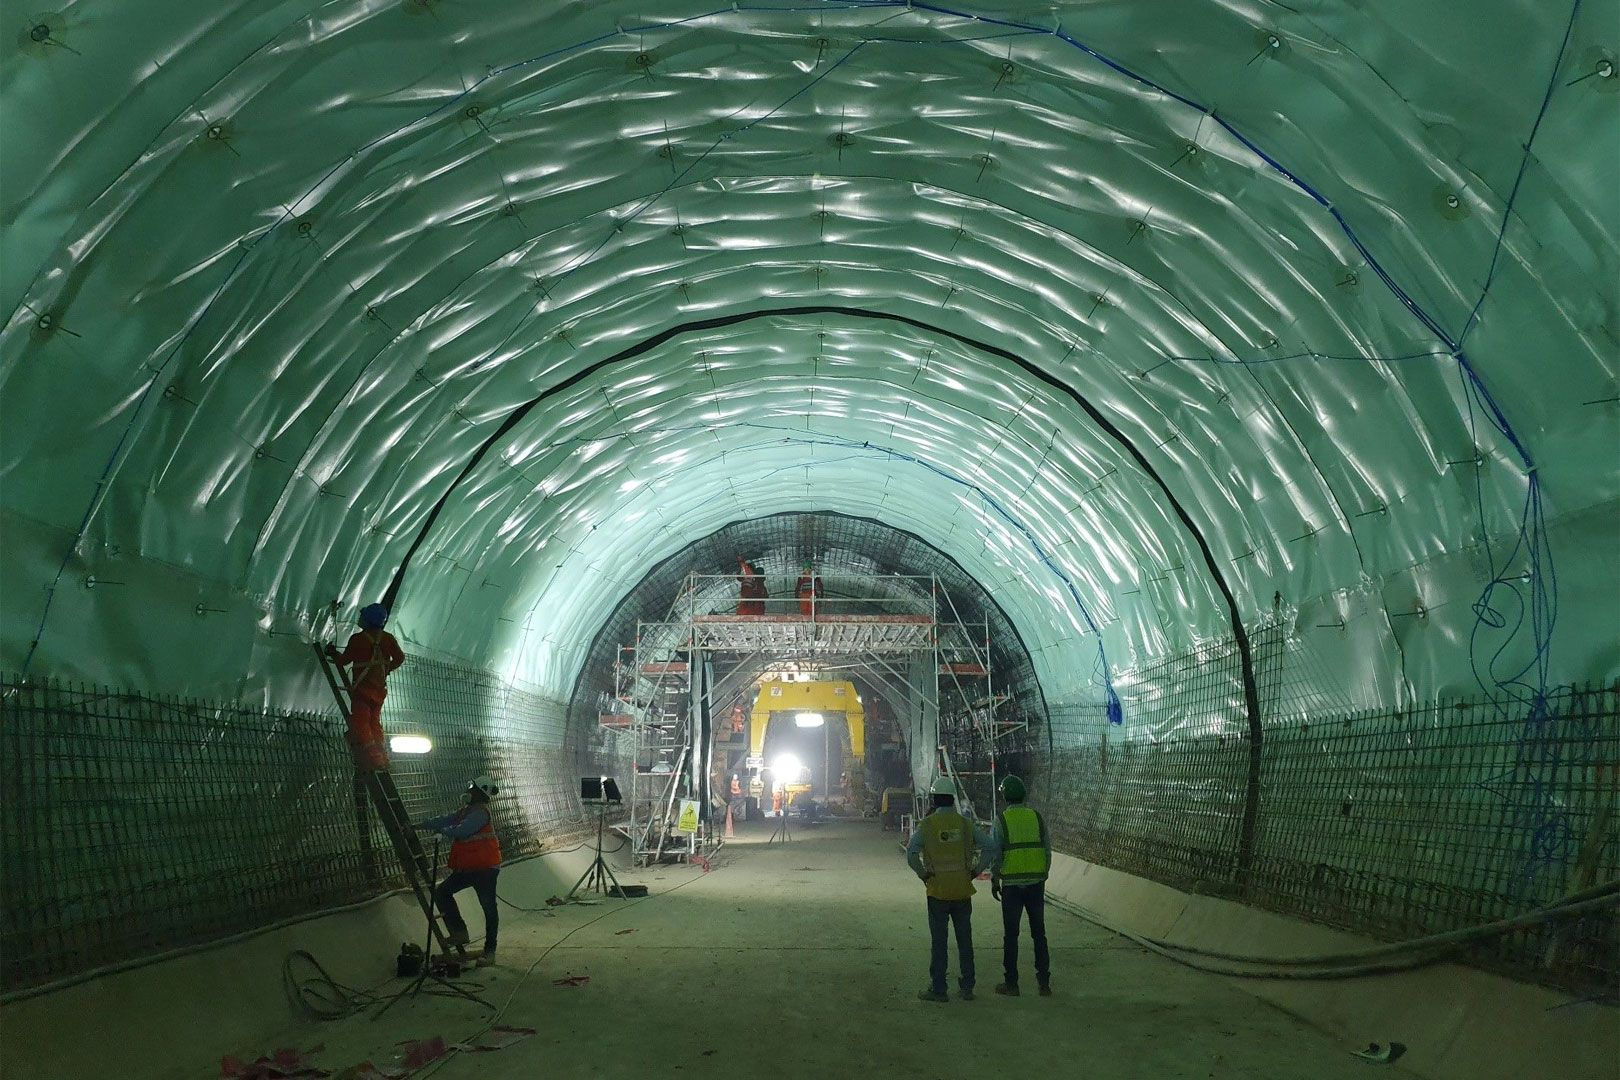 Metro de Lima tunnel stage 1B (construction)